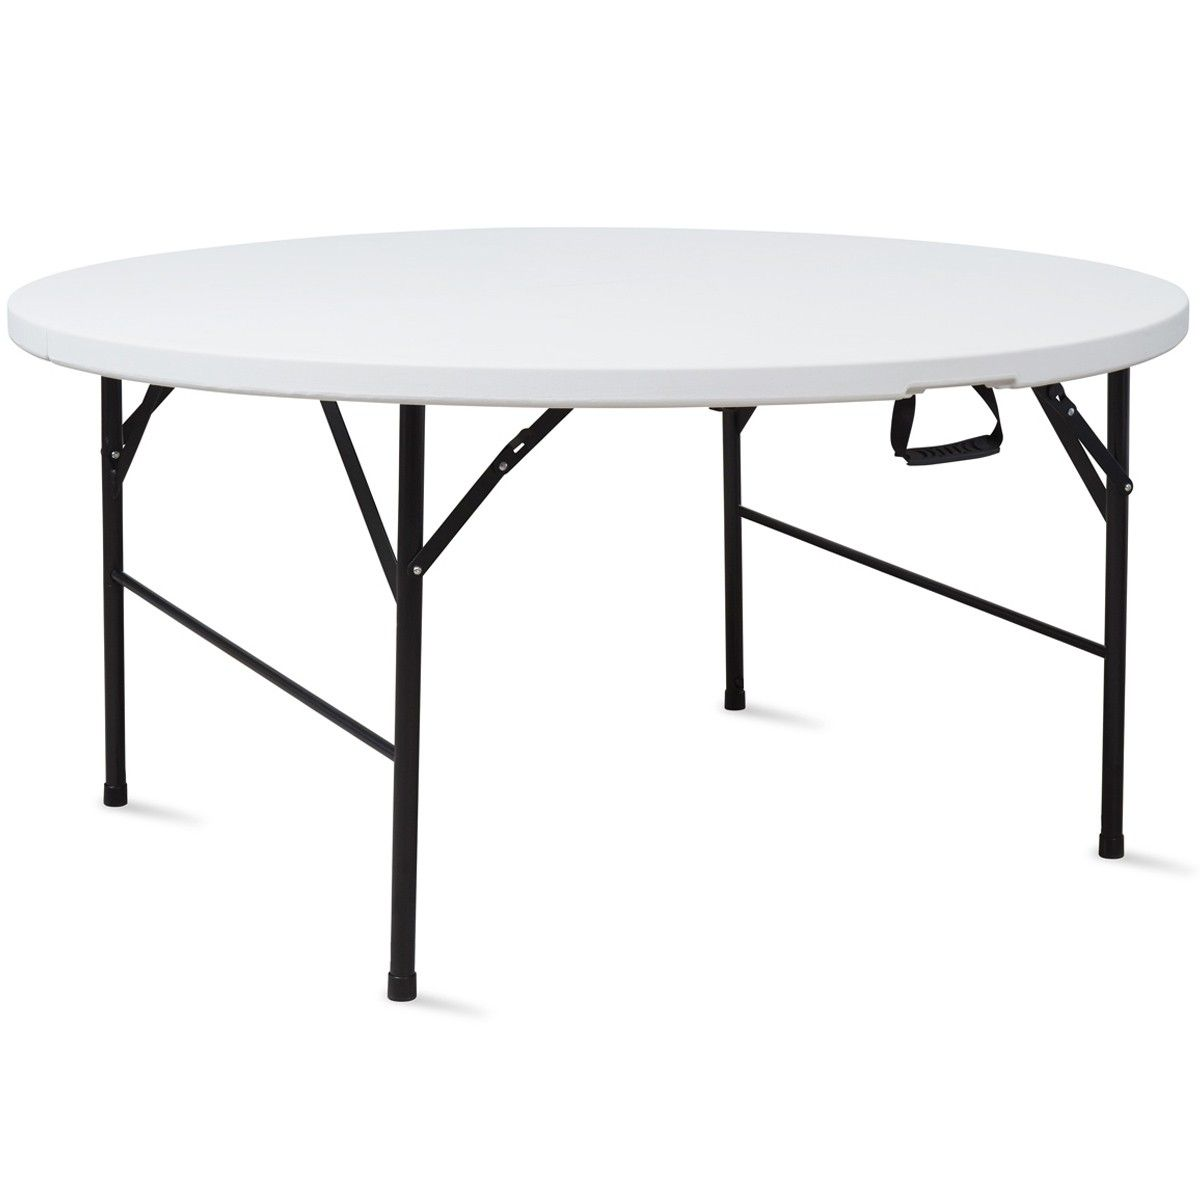 Table Pliante Ronde 10 Personnes - Taille : 10 pers ...